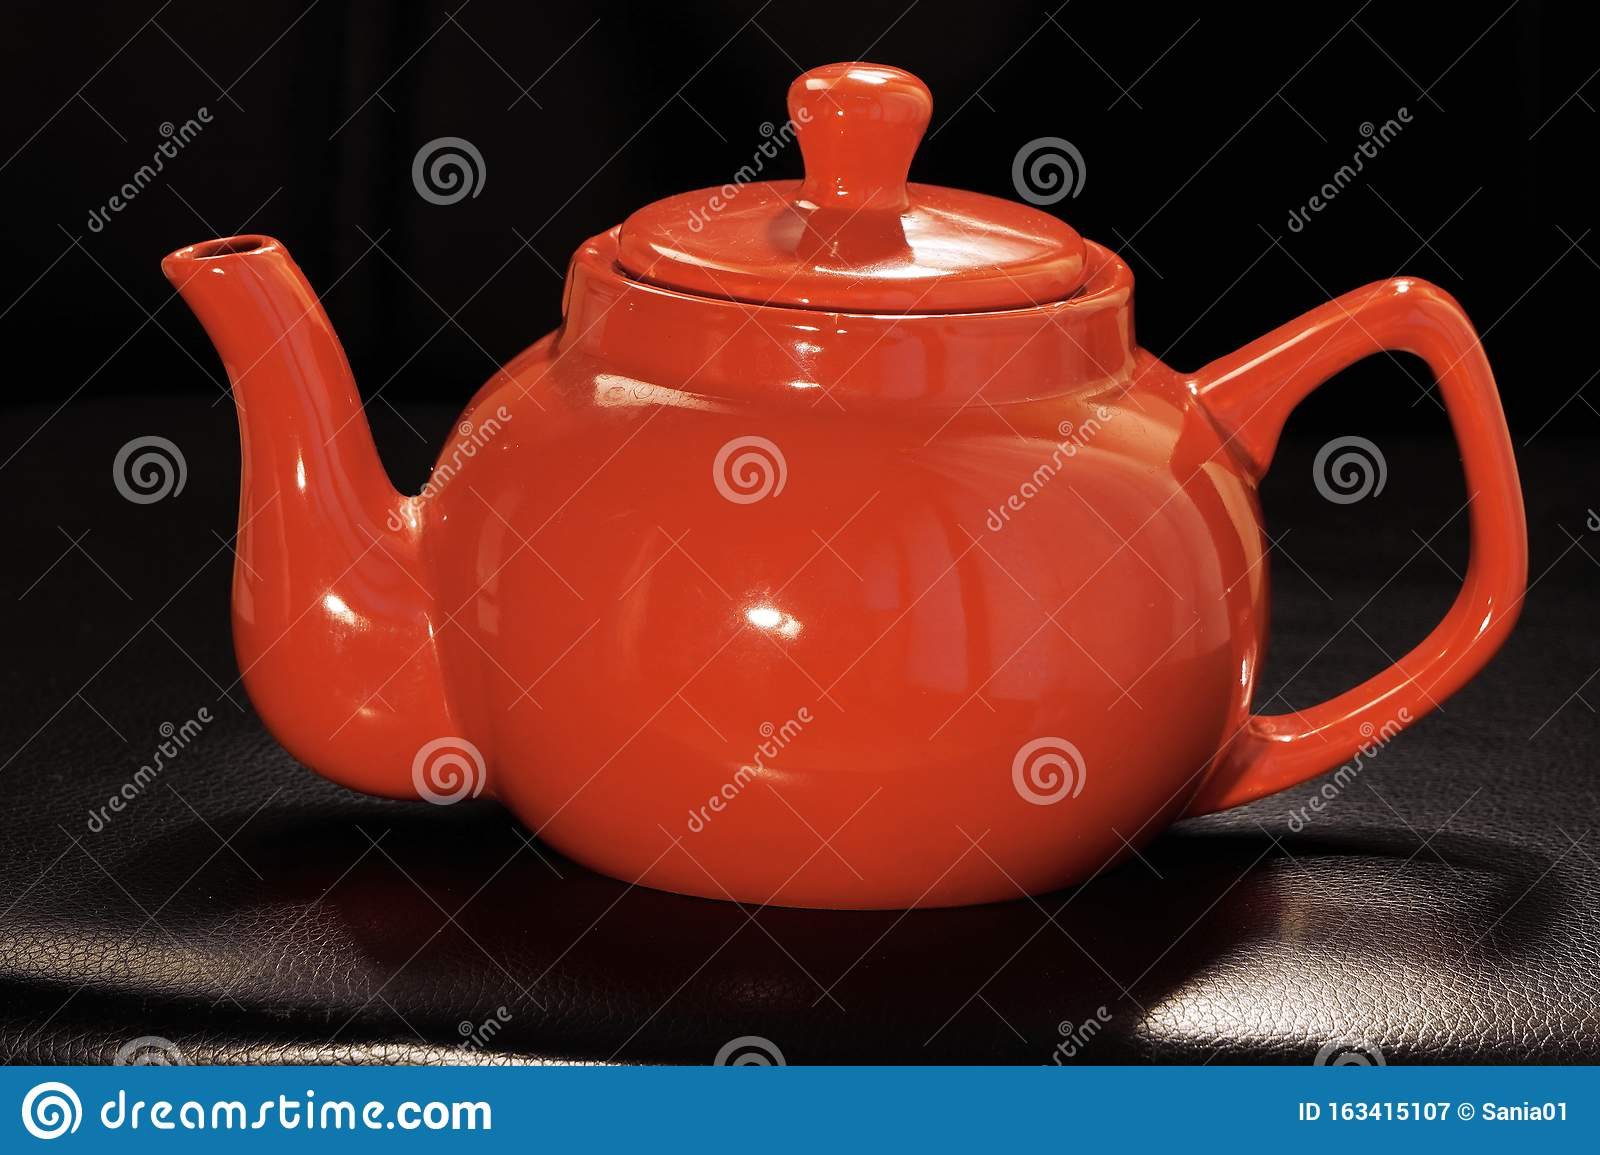 Bright Red Ceramic Teapot Or Brewing Teapot On A Black Background Small Kettle Afternoon Tea Drink Hot Tea Stock Image Image Of Dark Background 163415107